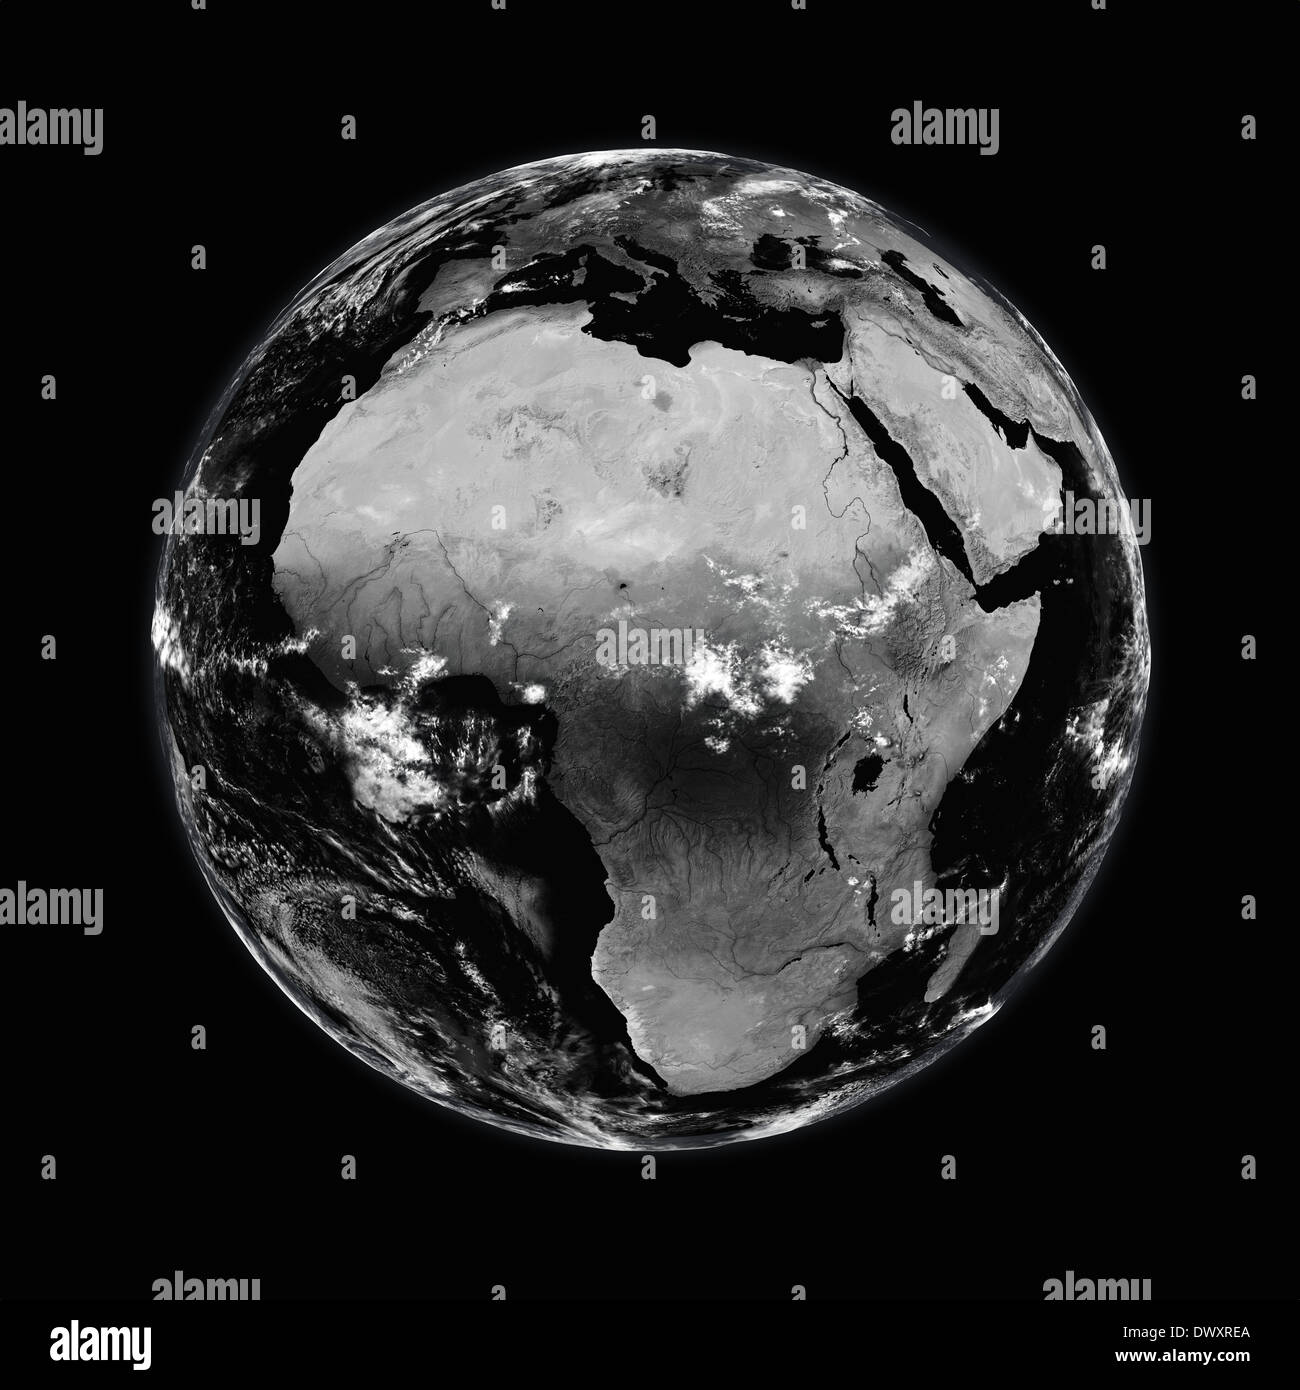 Africa on black planet Earth isolated on black background. Elements of this image furnished by NASA. - Stock Image